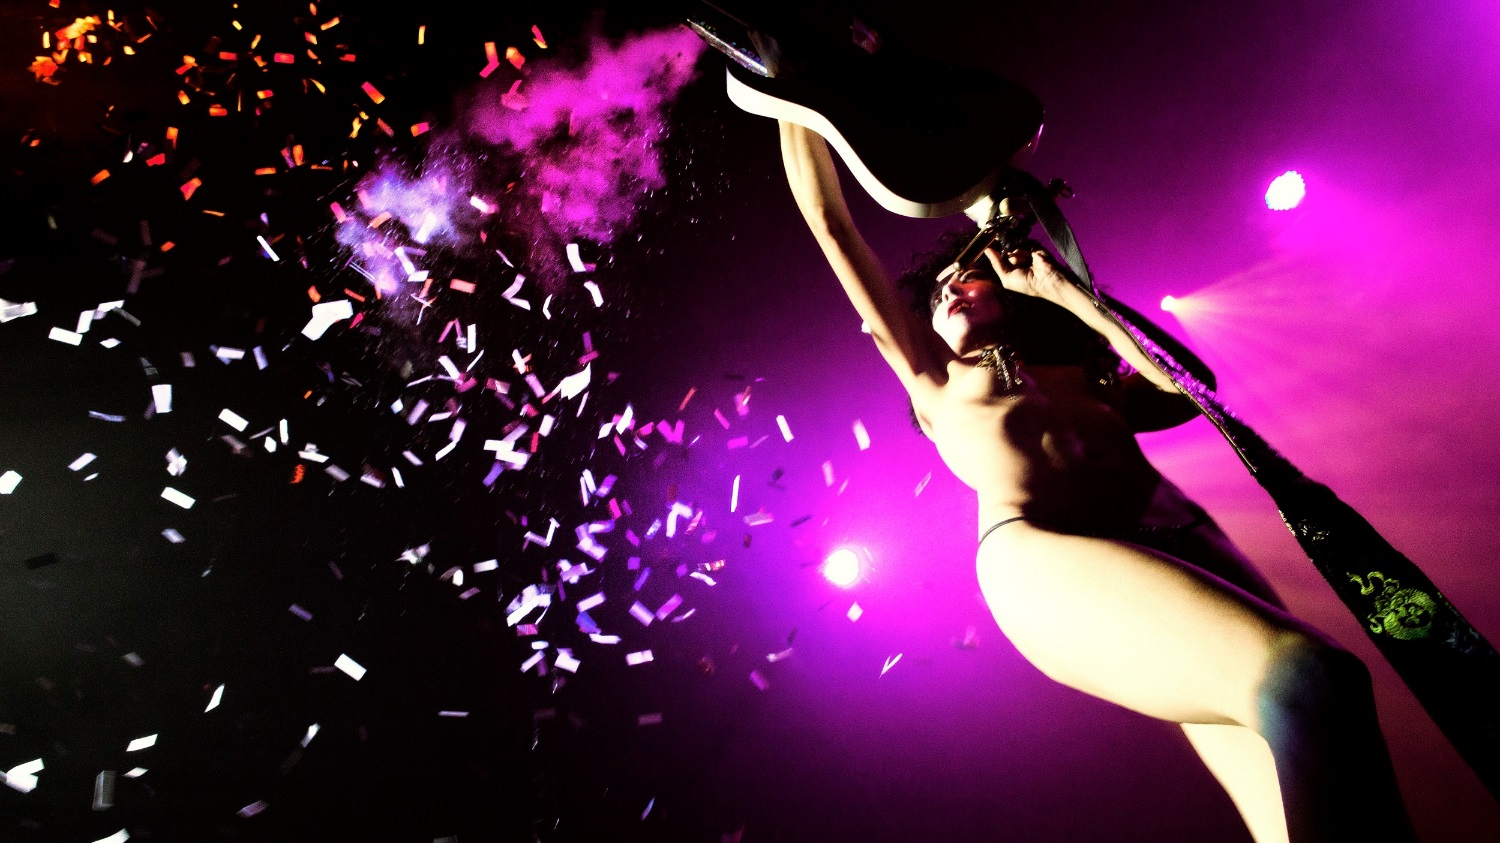 """Photo of Annie's """"Black Diamond"""" KISS tribute shot at Lucha VaVoom at the Mayan Theater by Bruno O'Hara"""